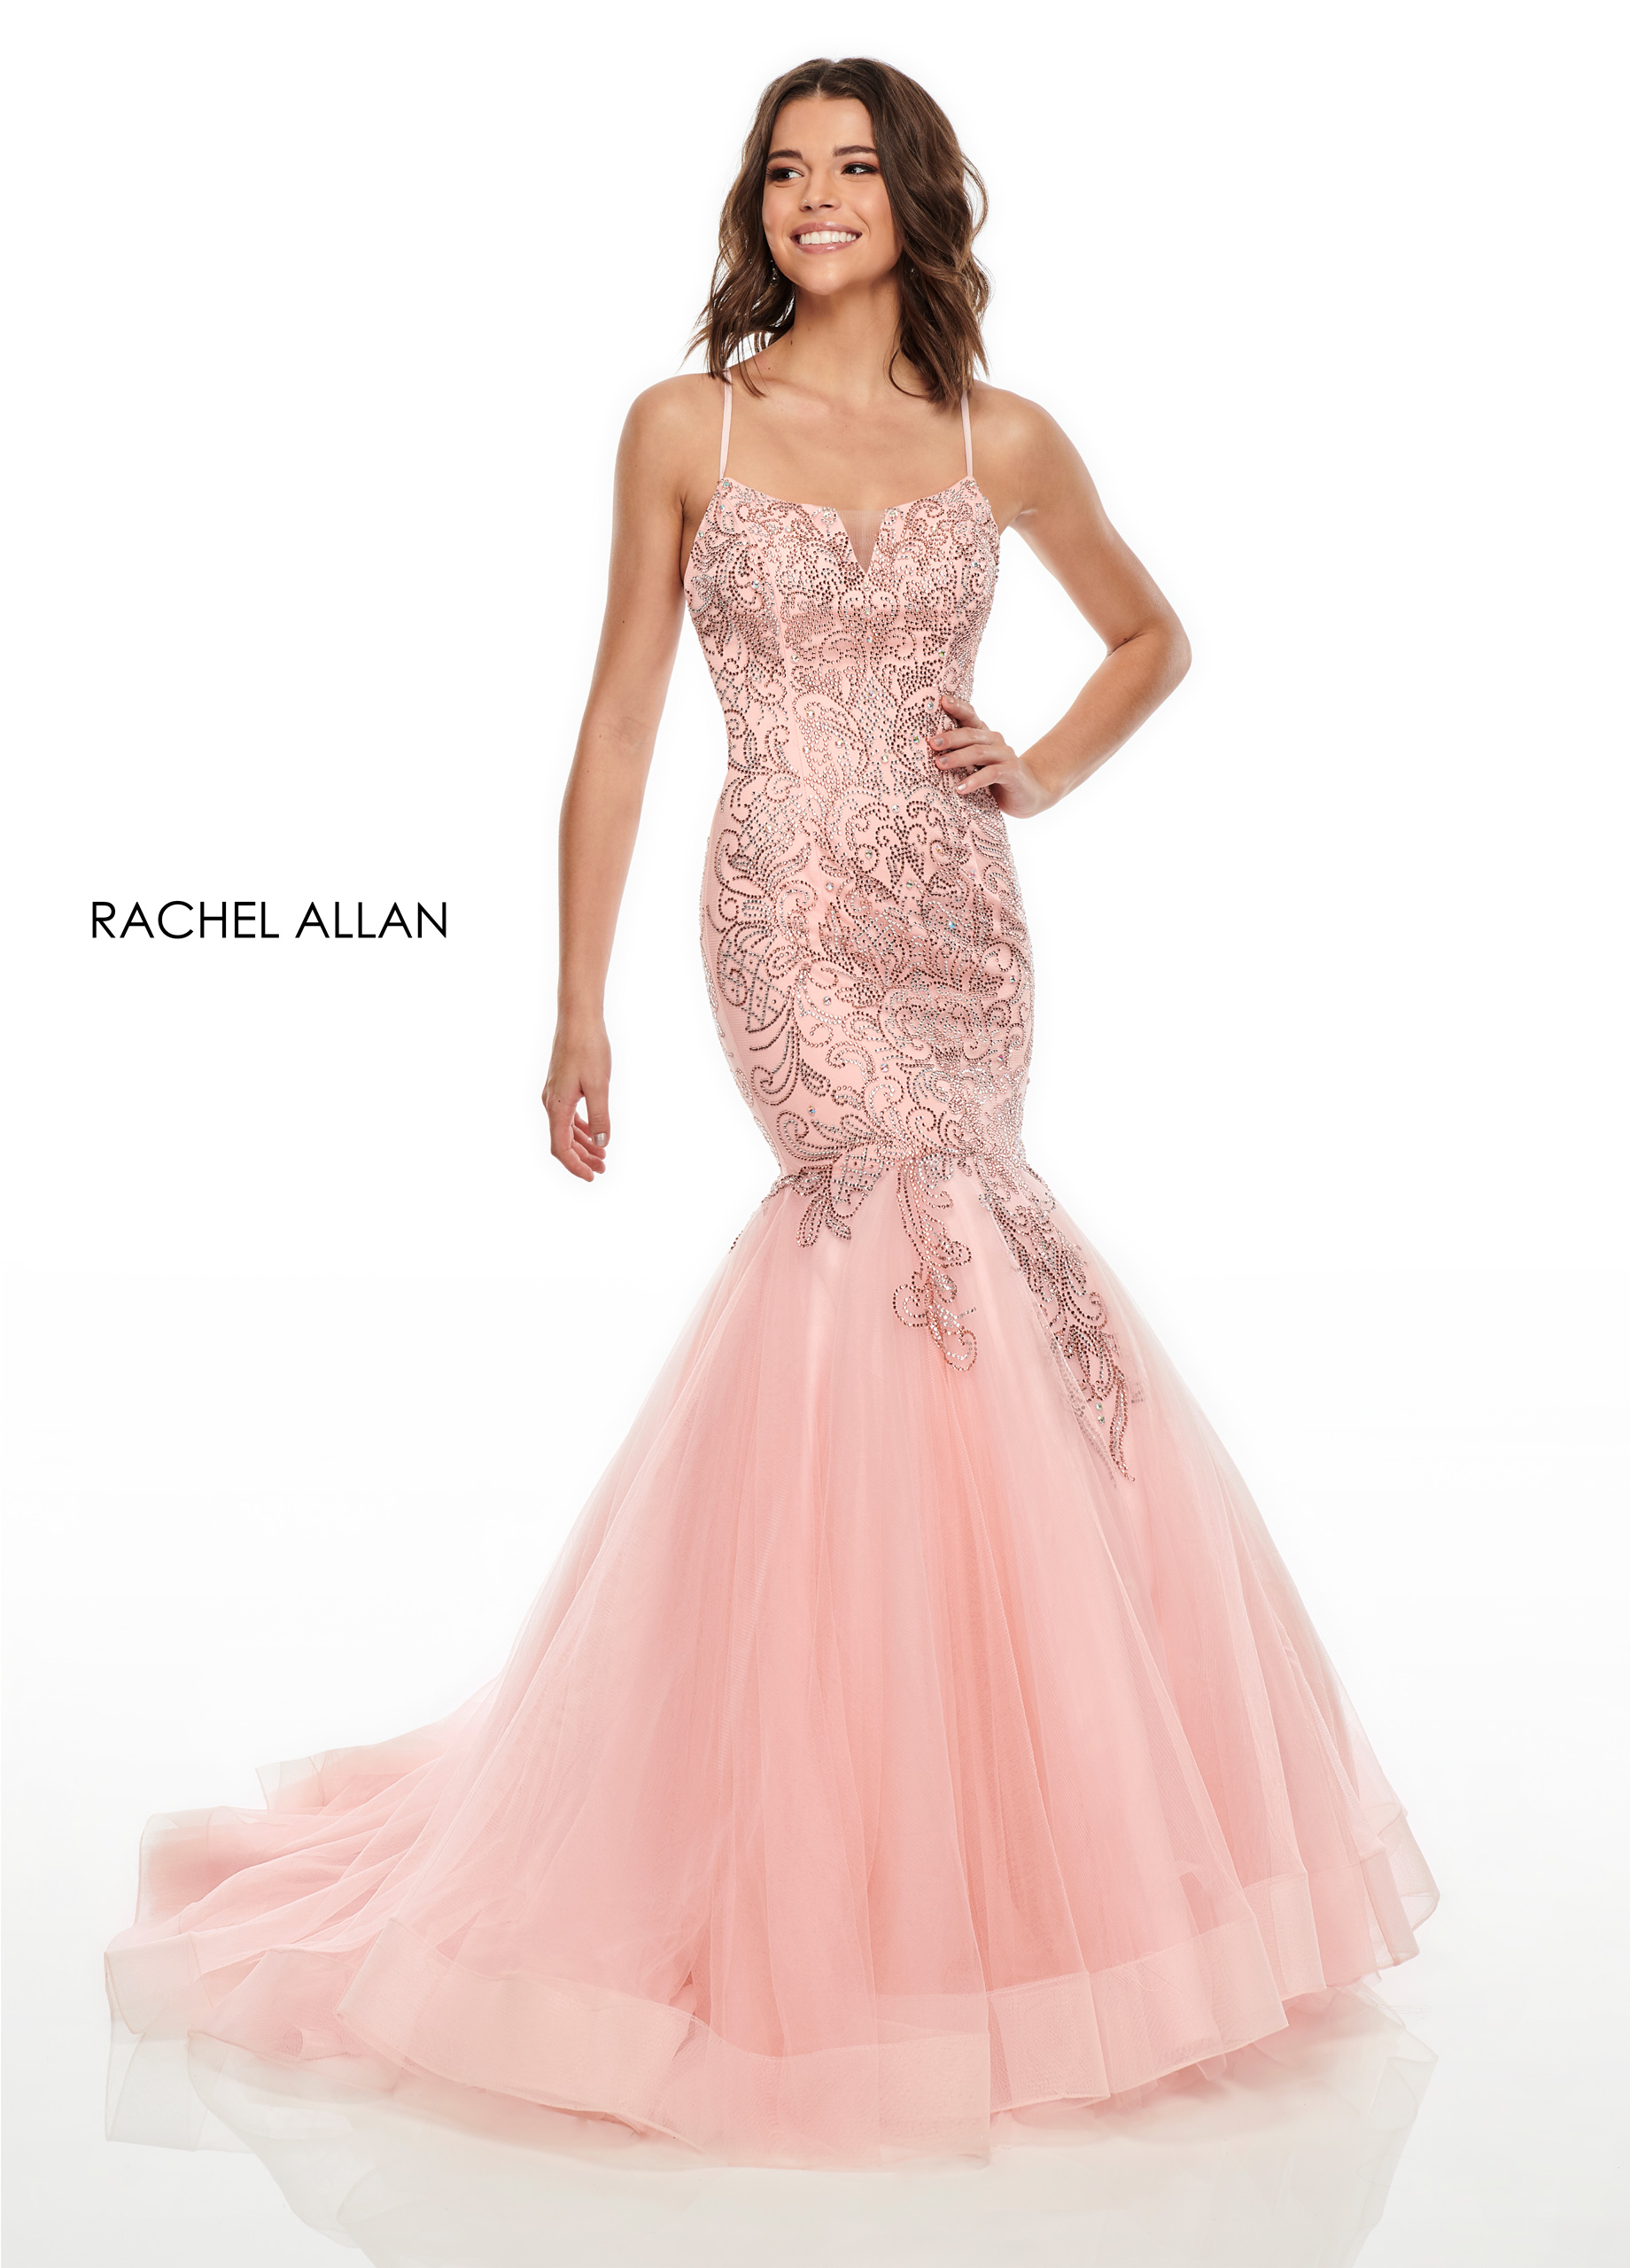 Square Mermaid Prom Dresses in Blush Color